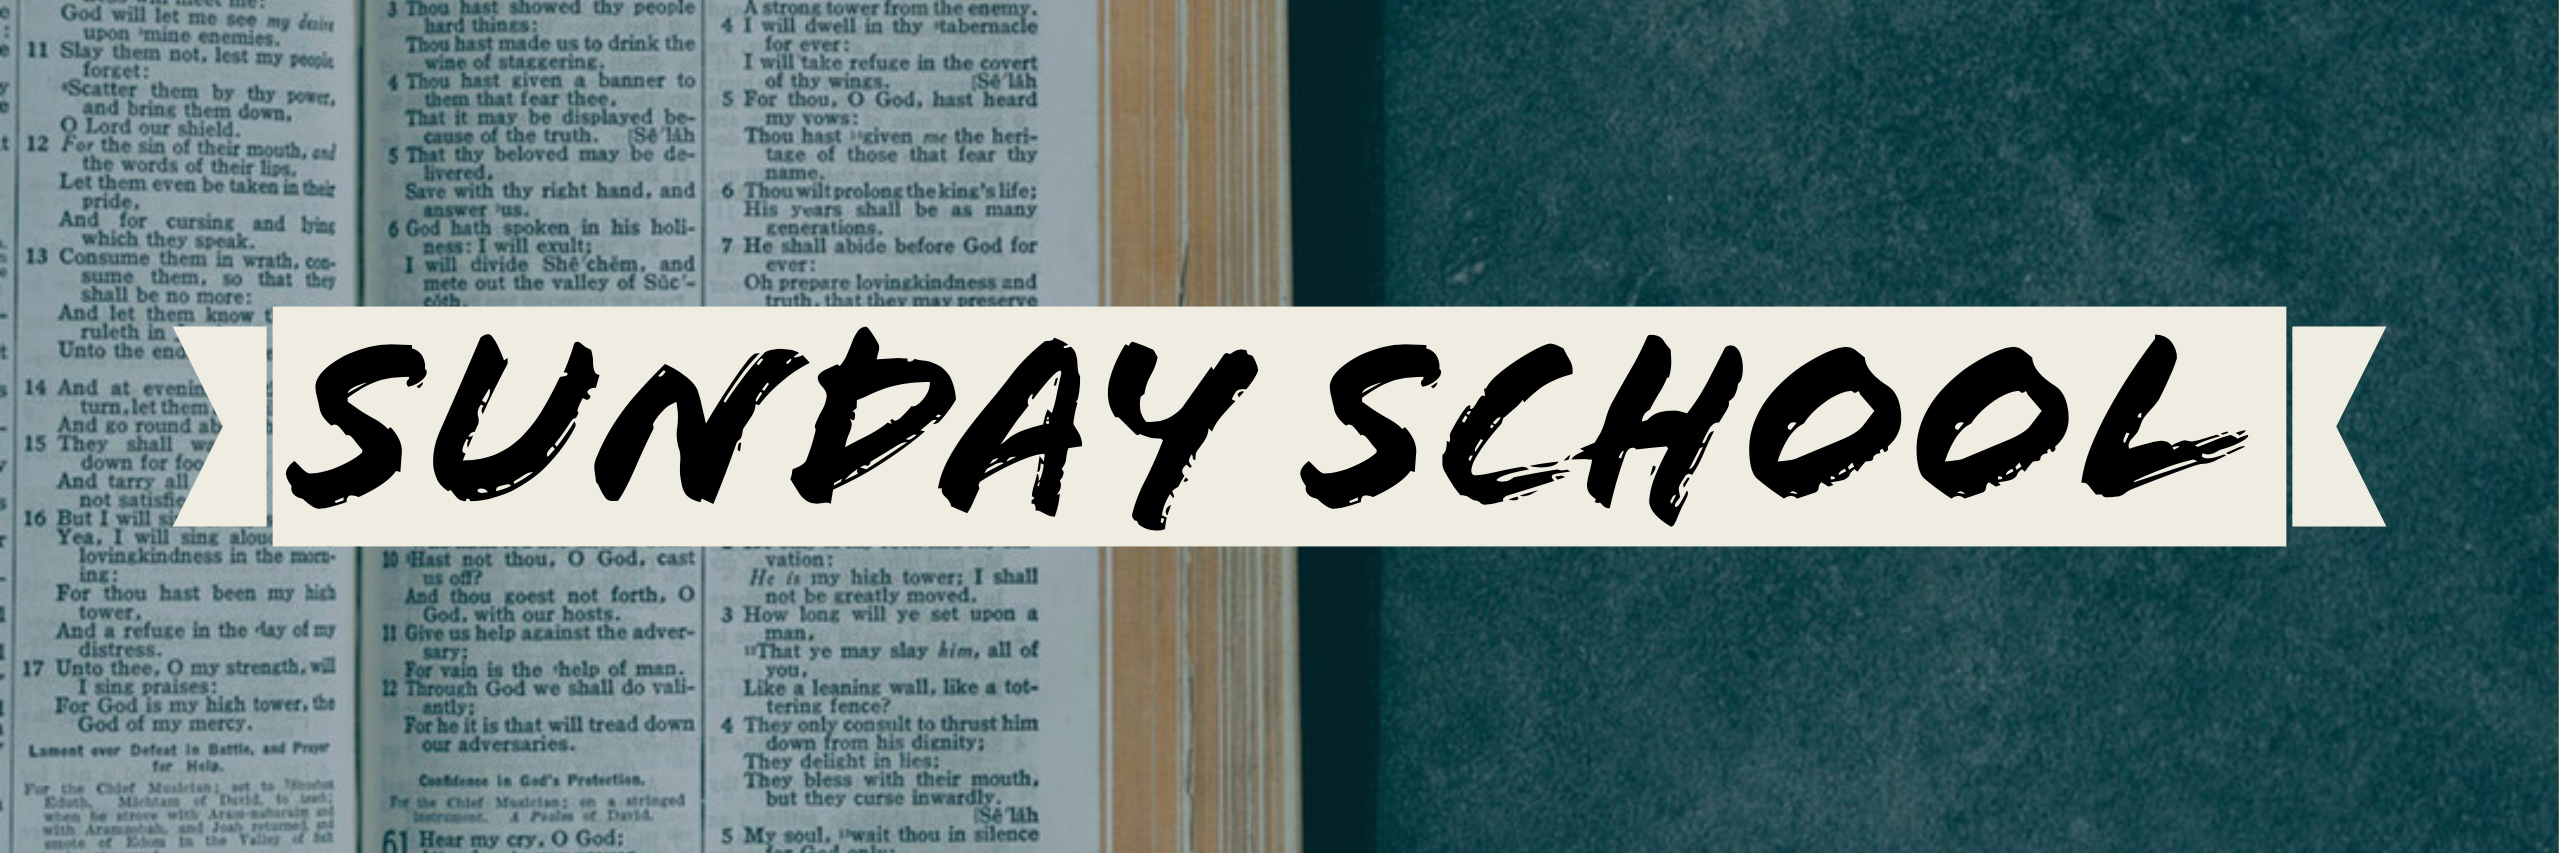 Practical Ecclesiology - Doctrine of the Church Part 3